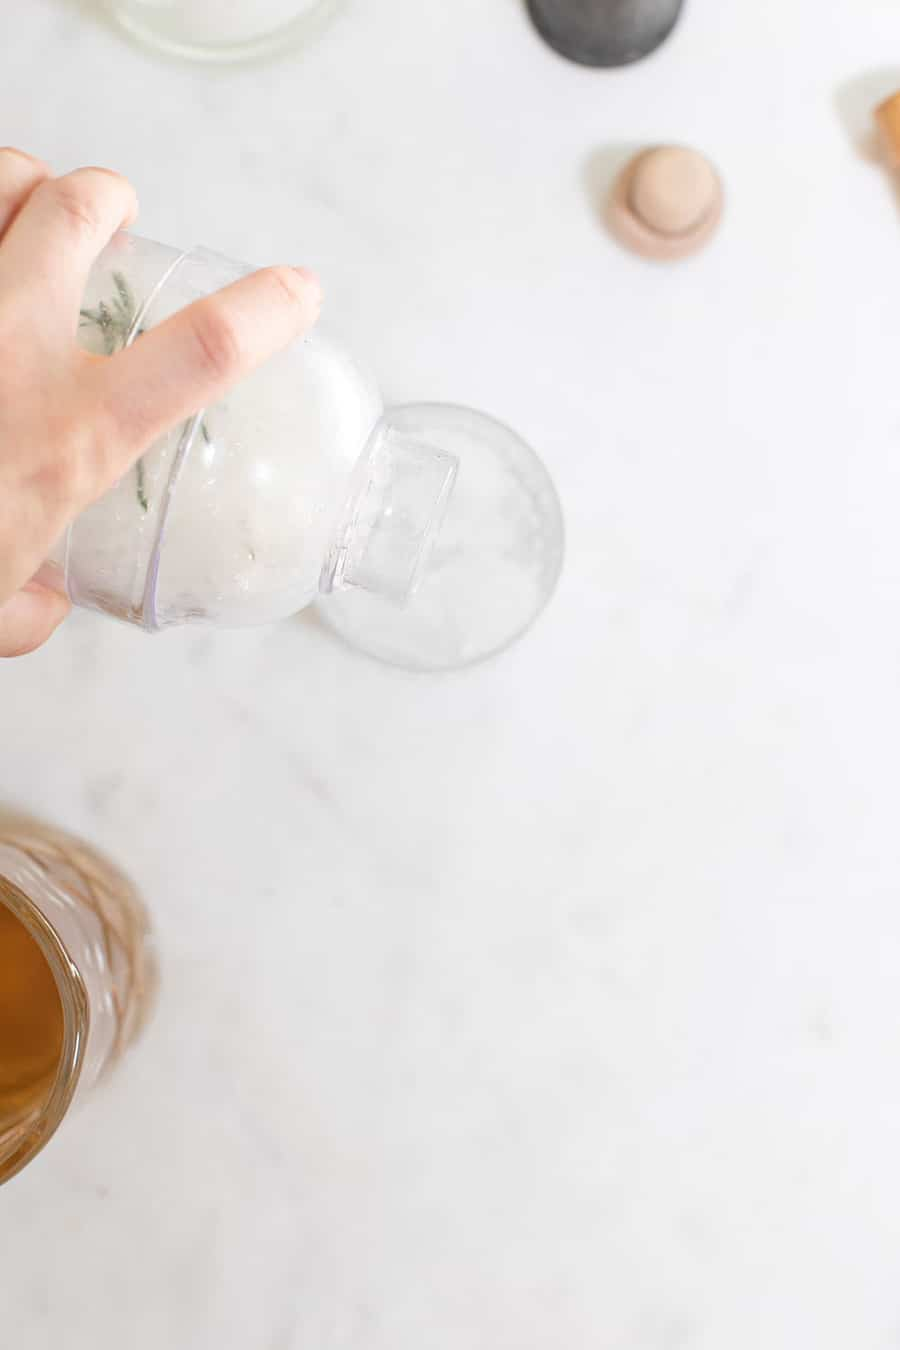 Pouring a mocktail into a glass.